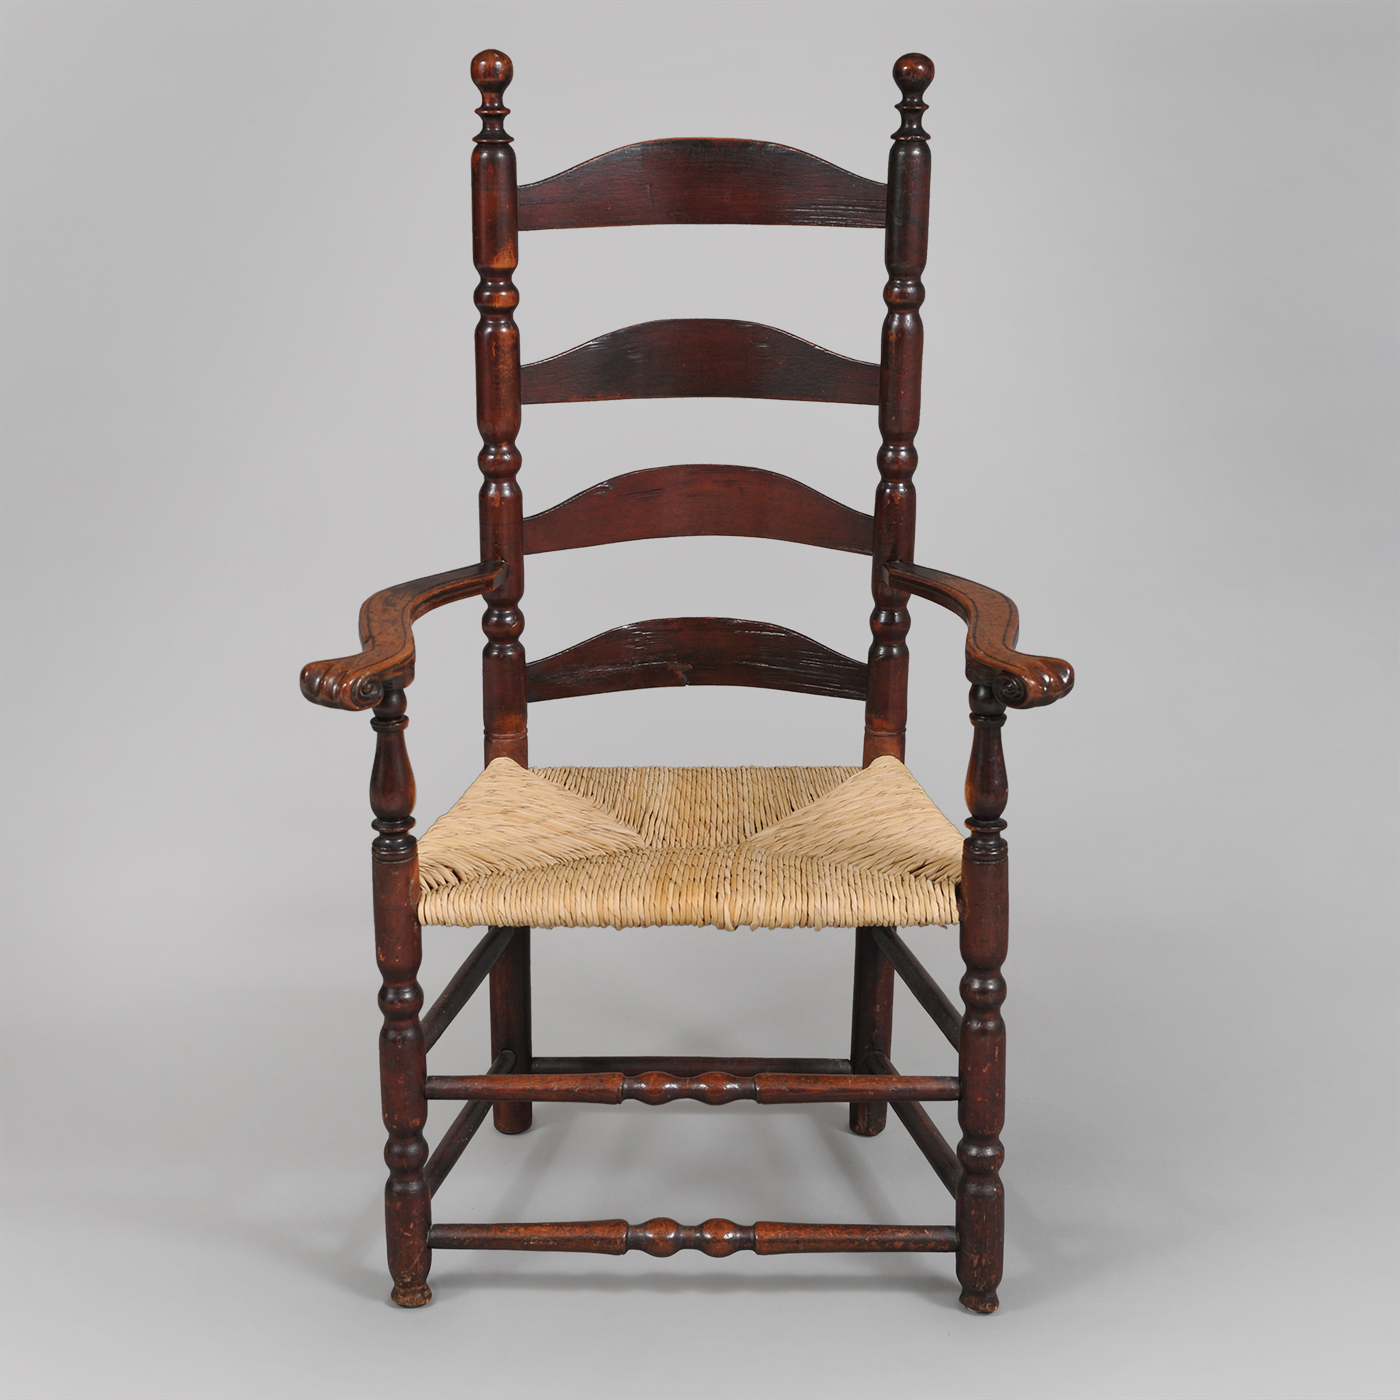 Stupendous Rare Queen Anne Ladder Back Carved Knuckle Arm Chair Gamerscity Chair Design For Home Gamerscityorg